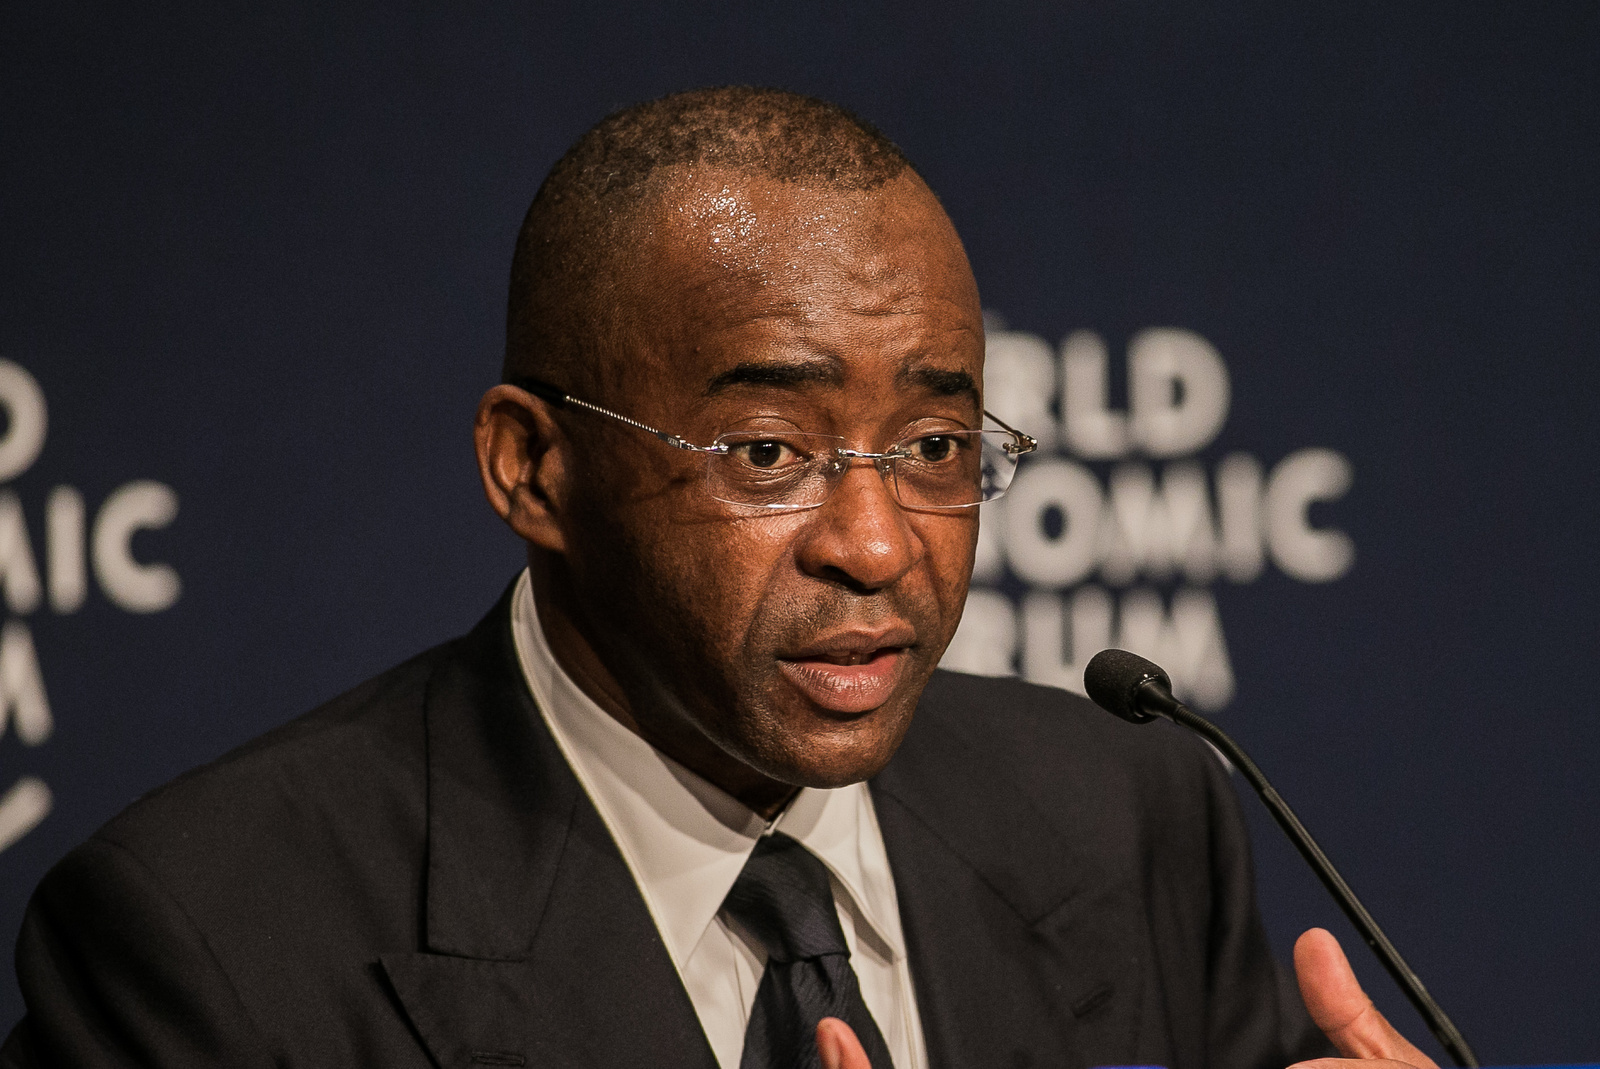 Businessness Mogul Strive Masiyiwa Buys 2 Penthouse units In NewYork for $24.5 million!